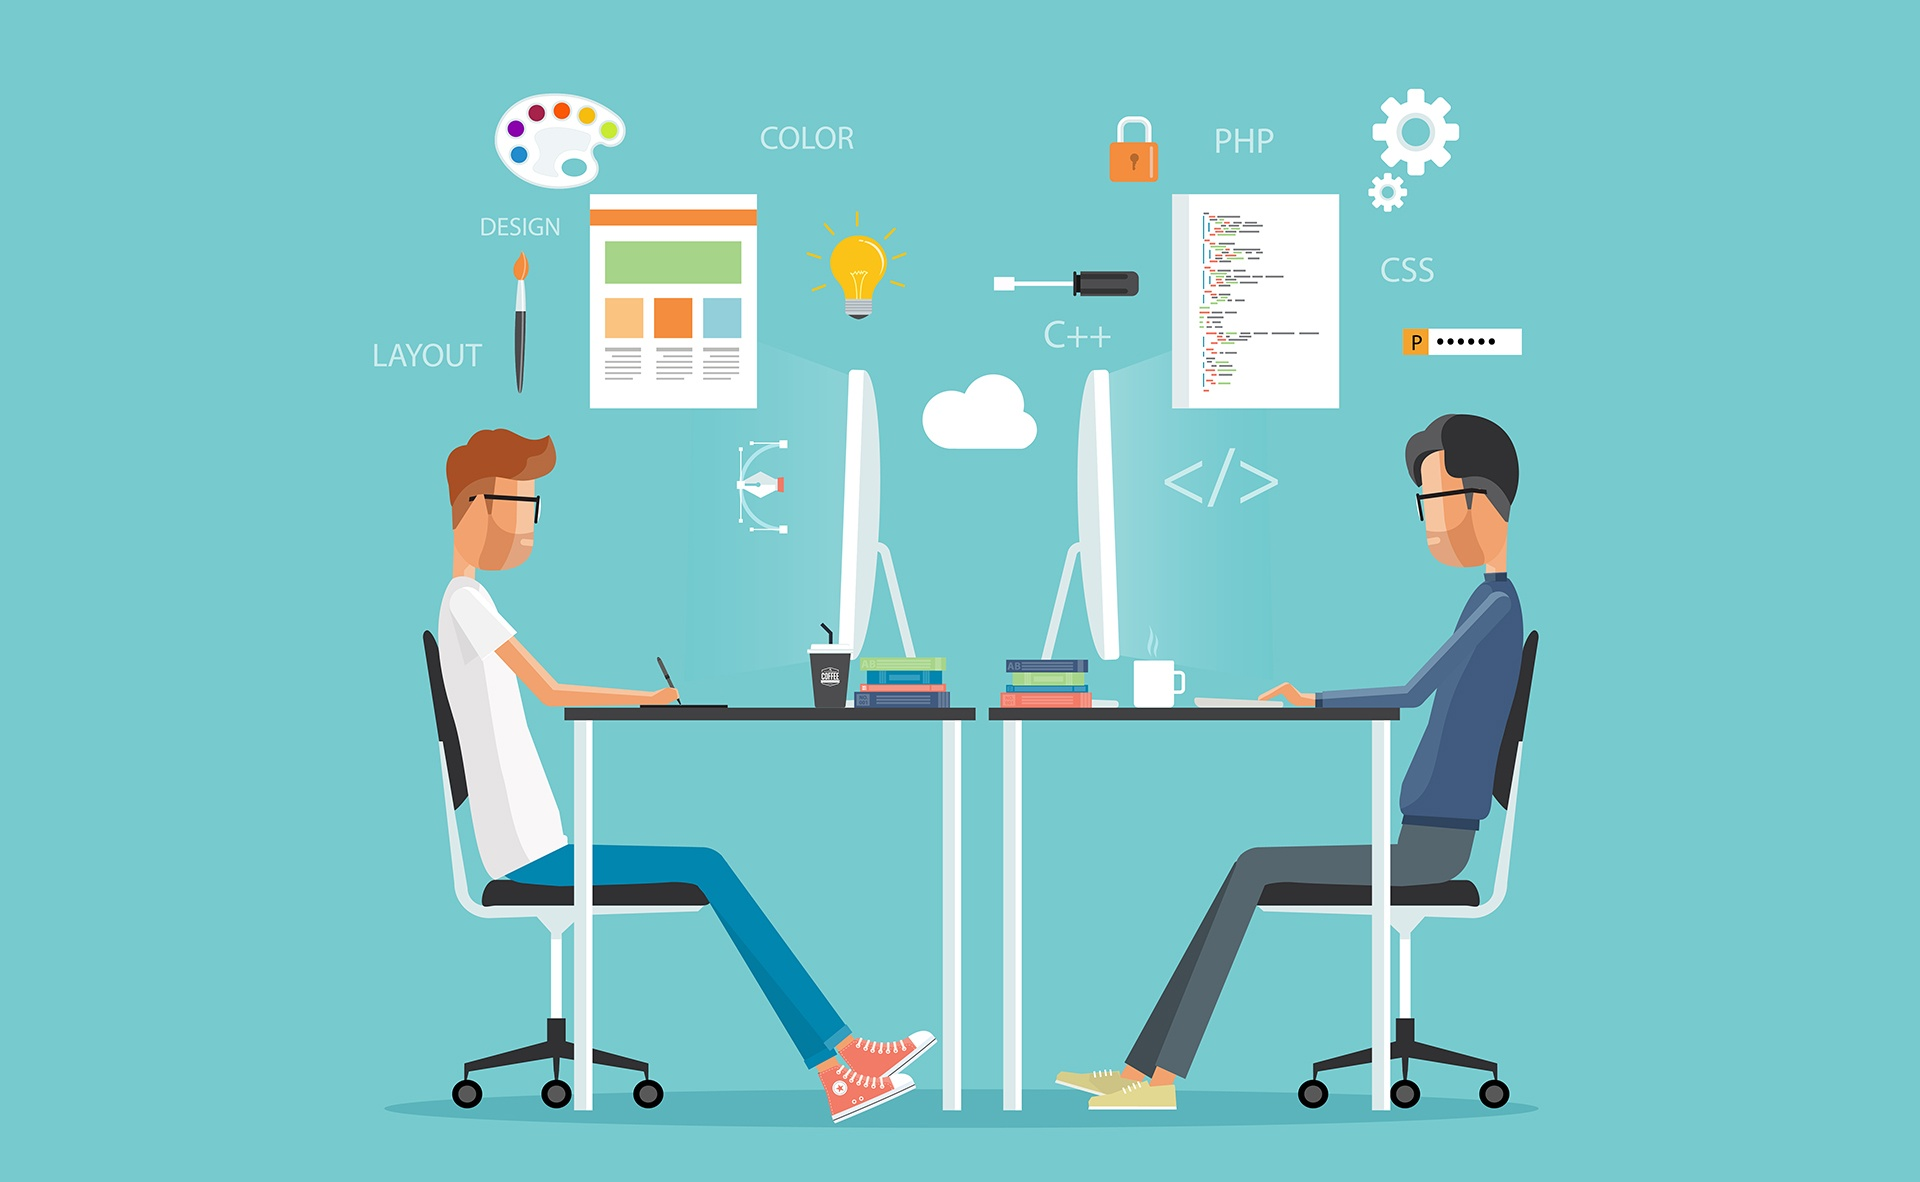 15 Qualities We Want When Hiring a Web Designer or Developer